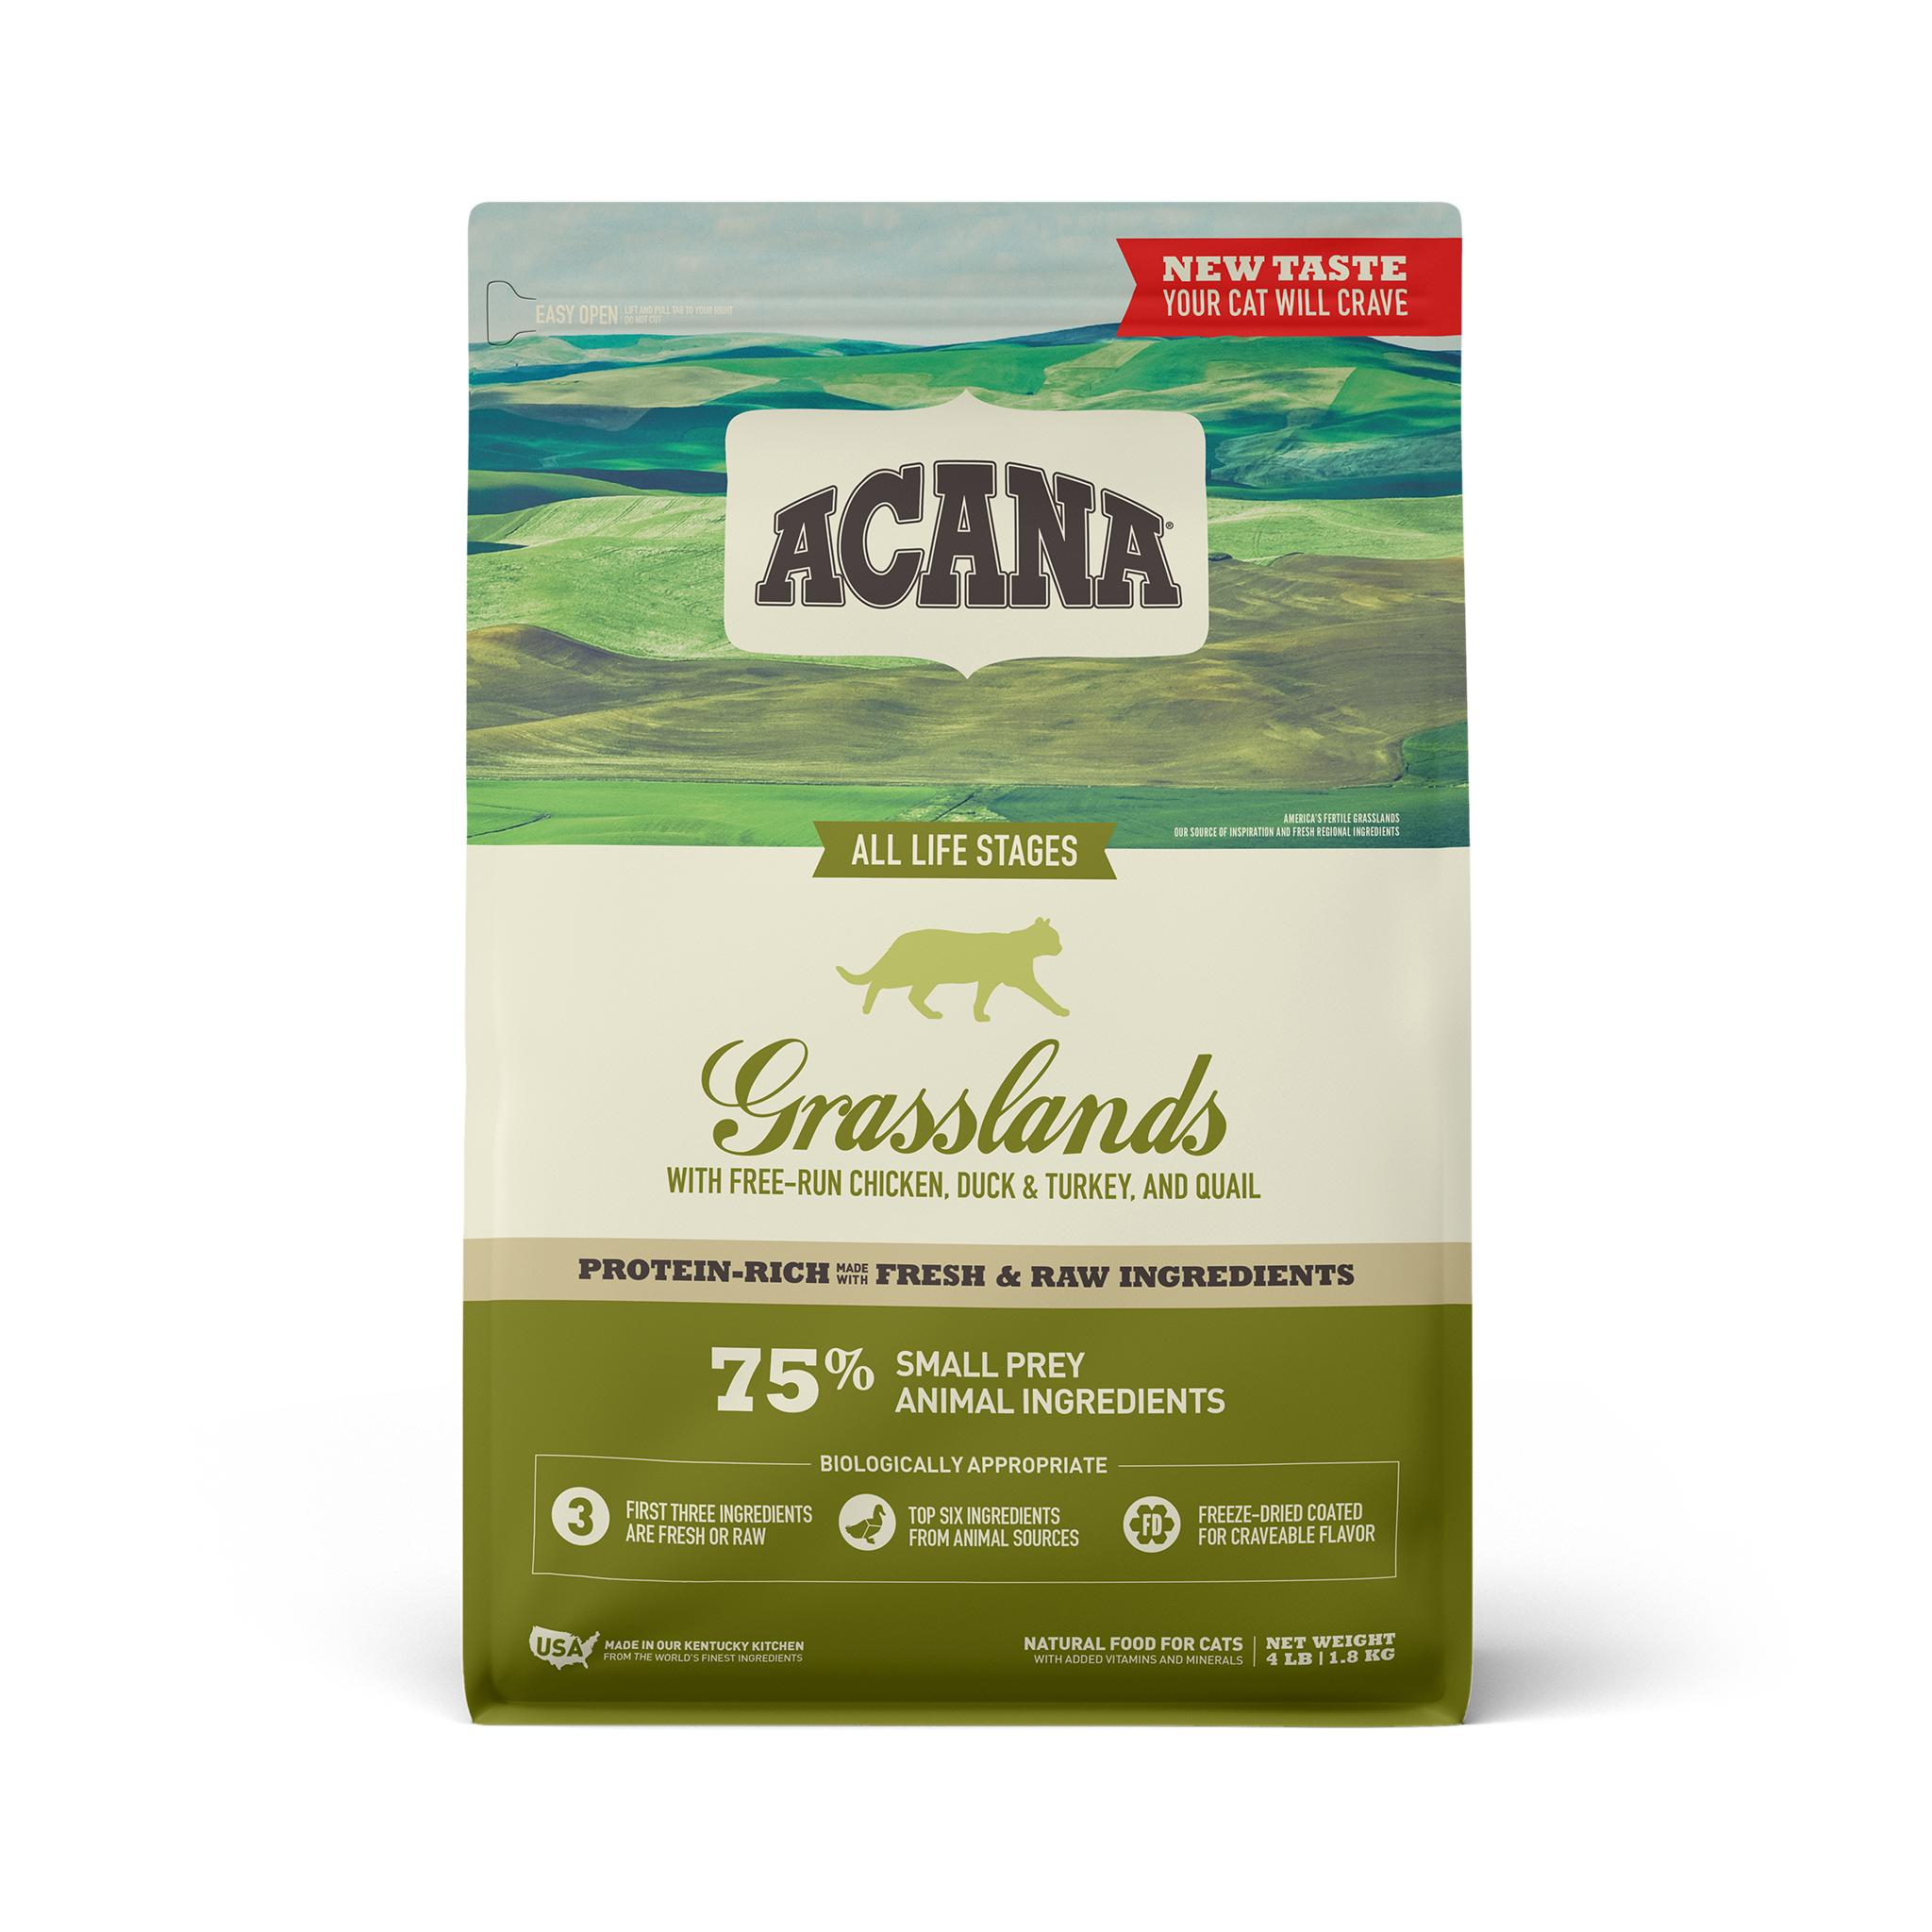 ACANA Grasslands Grain-Free Dry Cat Food, 4-lb bag